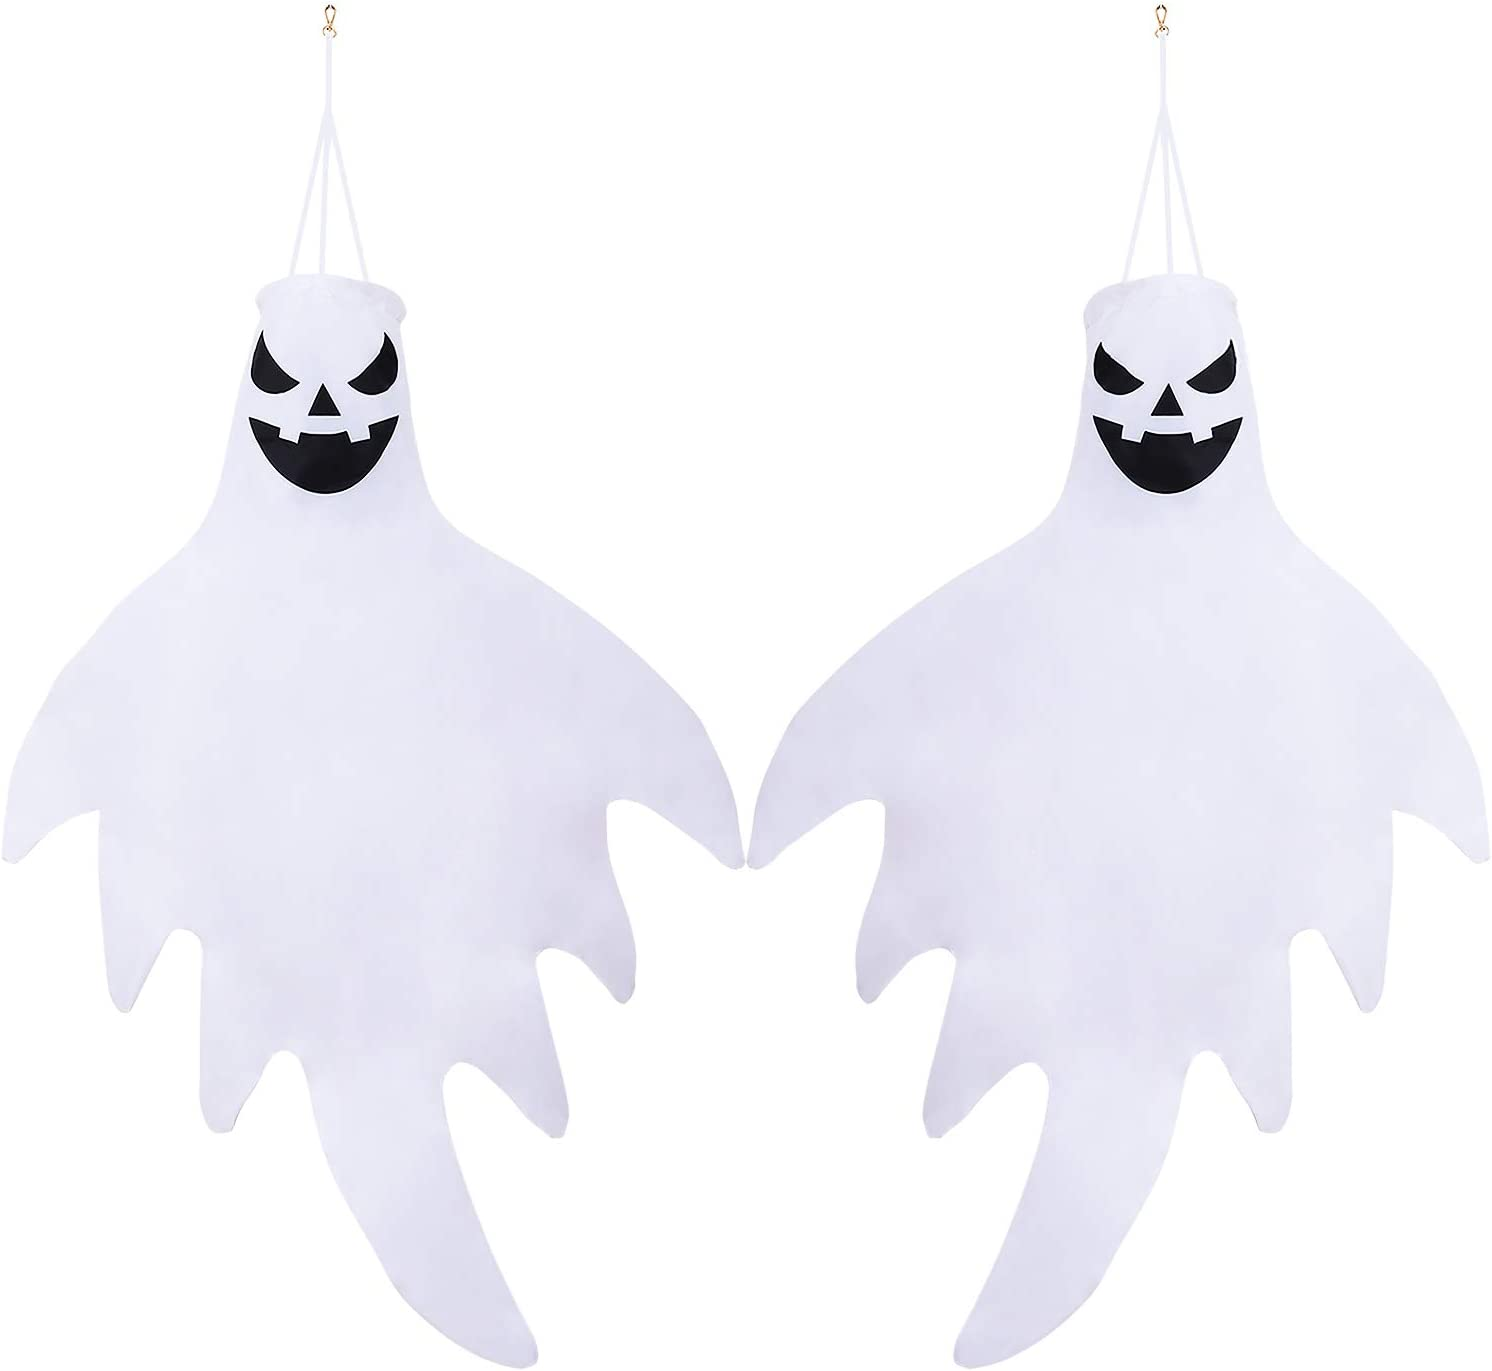 URATOT 2 Pieces Ghost Windsock Flag Halloween Hanging Decorations Hanging Ghost Includes Hanging Clip for Indoor Outdoor Yard Patio Lawn Garden Party 43 Inches